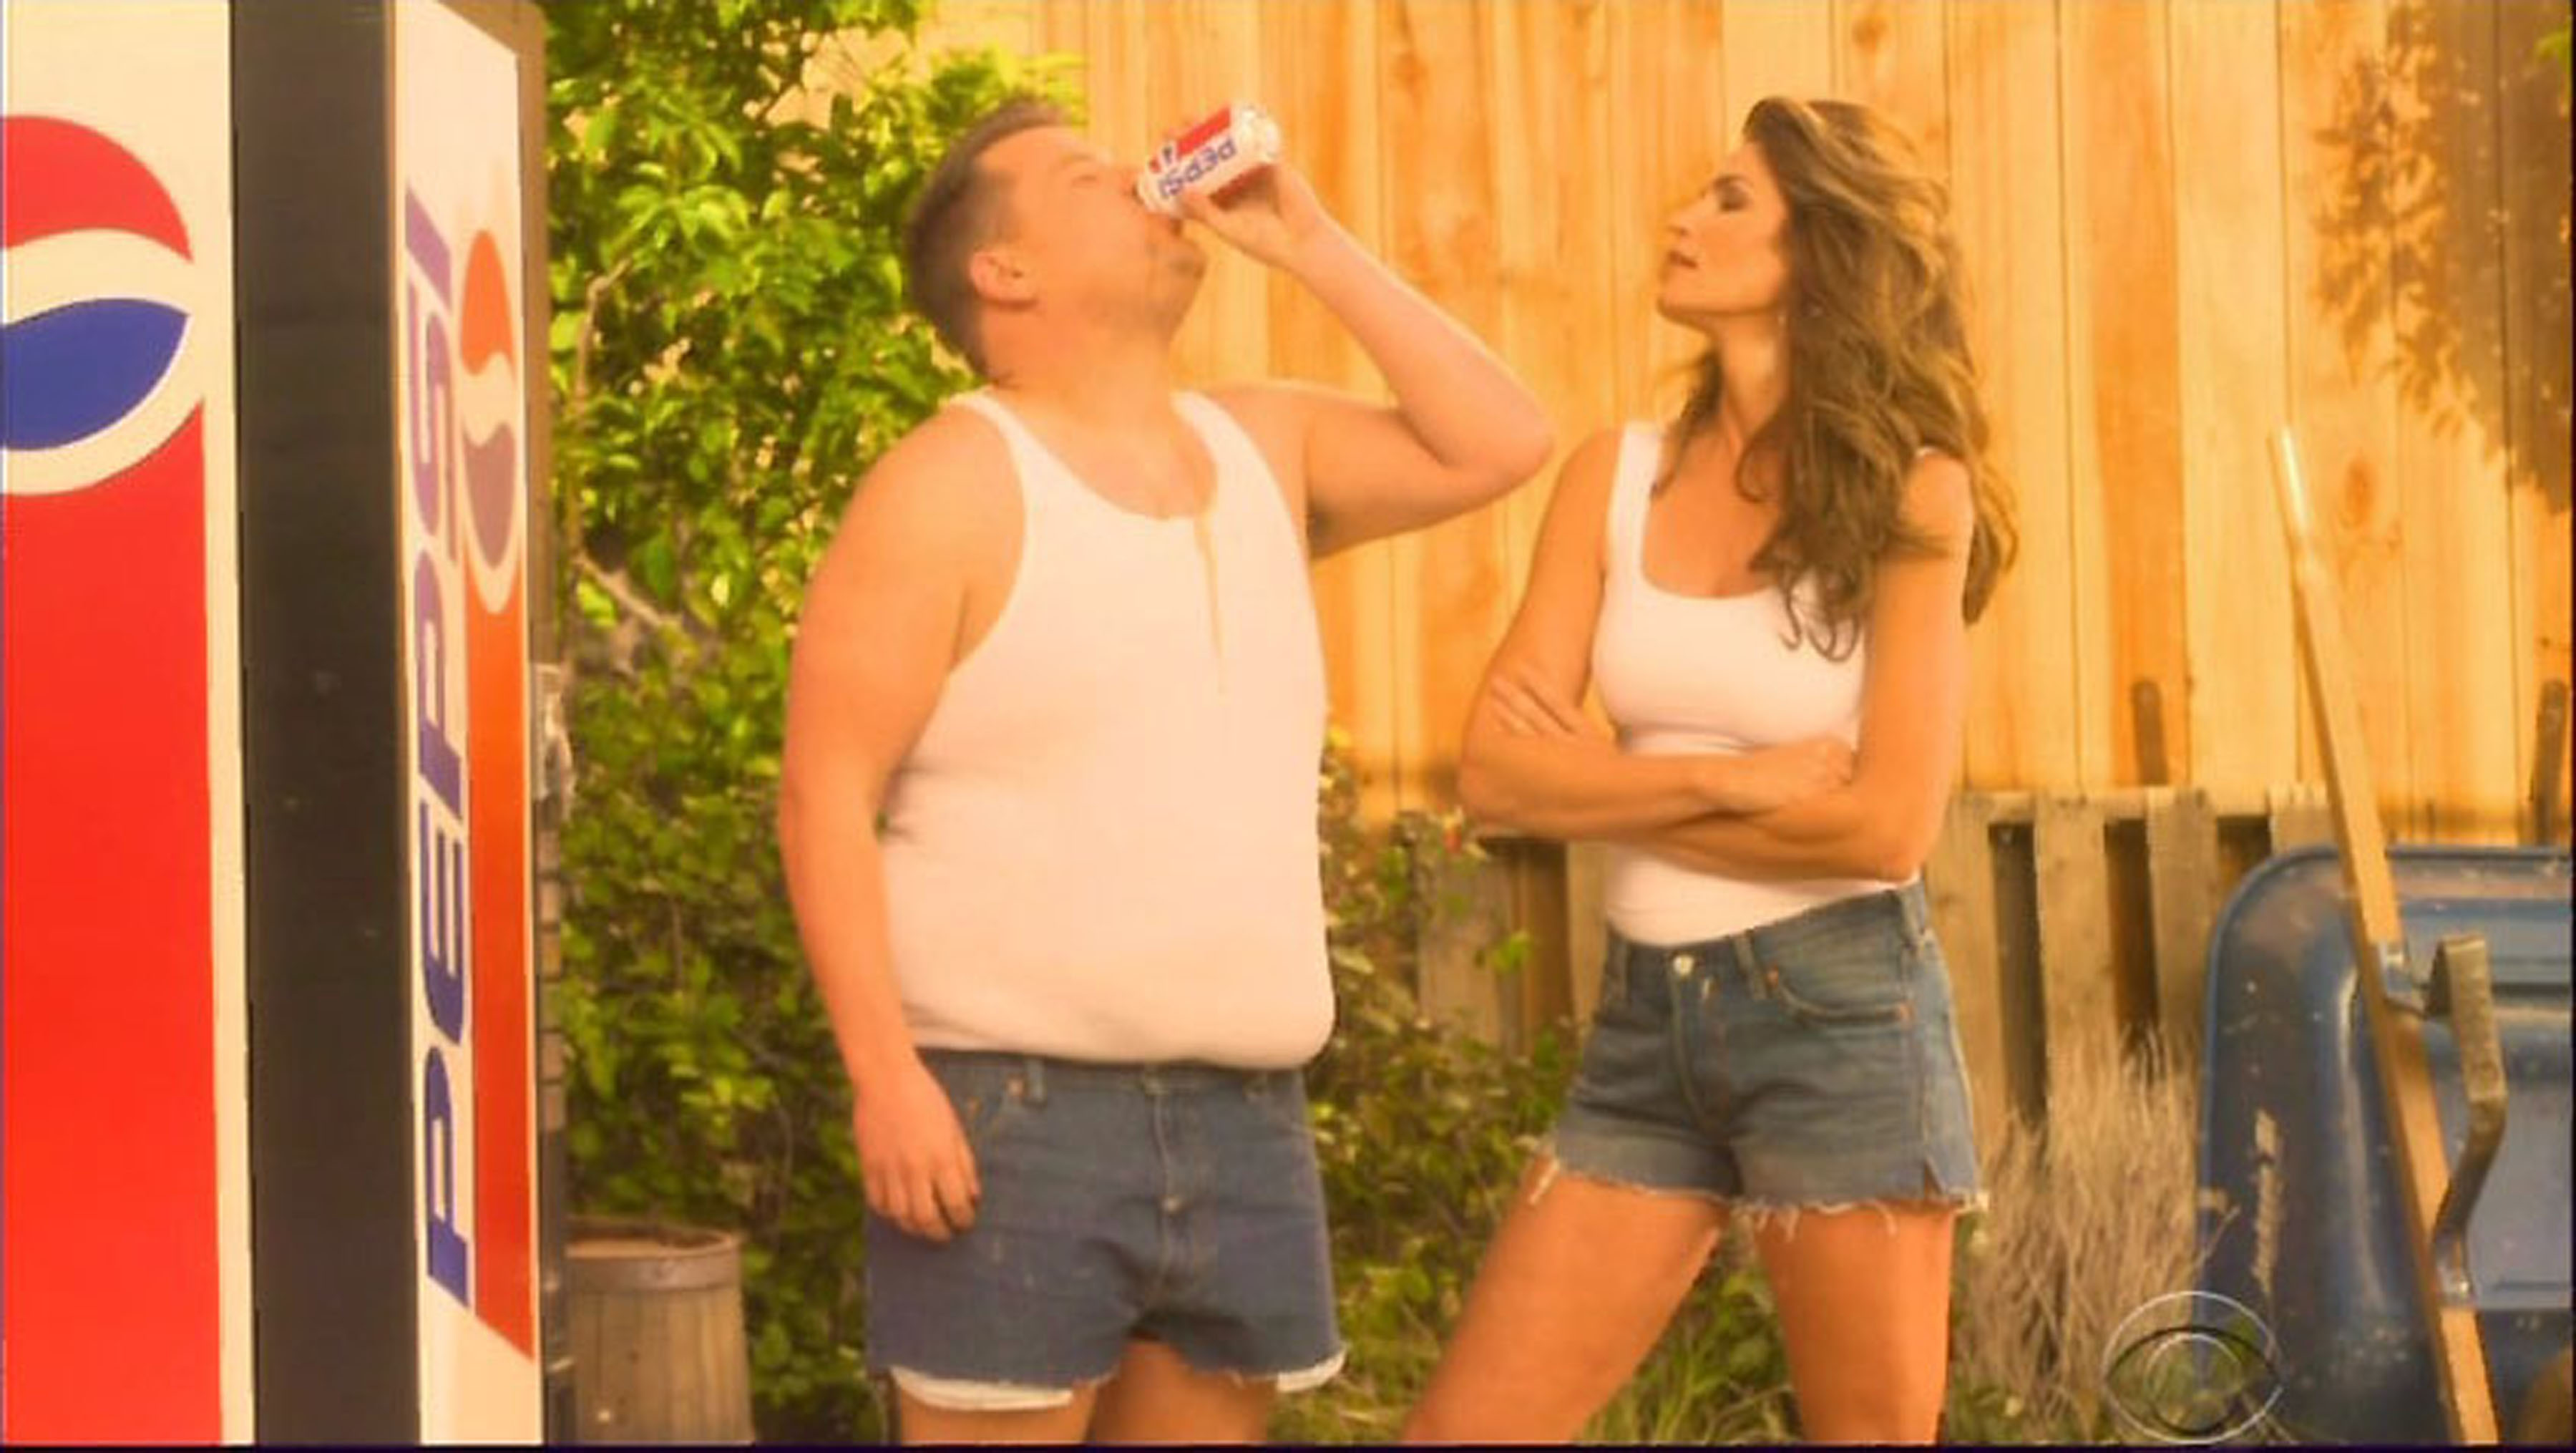 James Corden's delivering his own version of Cindy Crawford's classic Pepsi ad